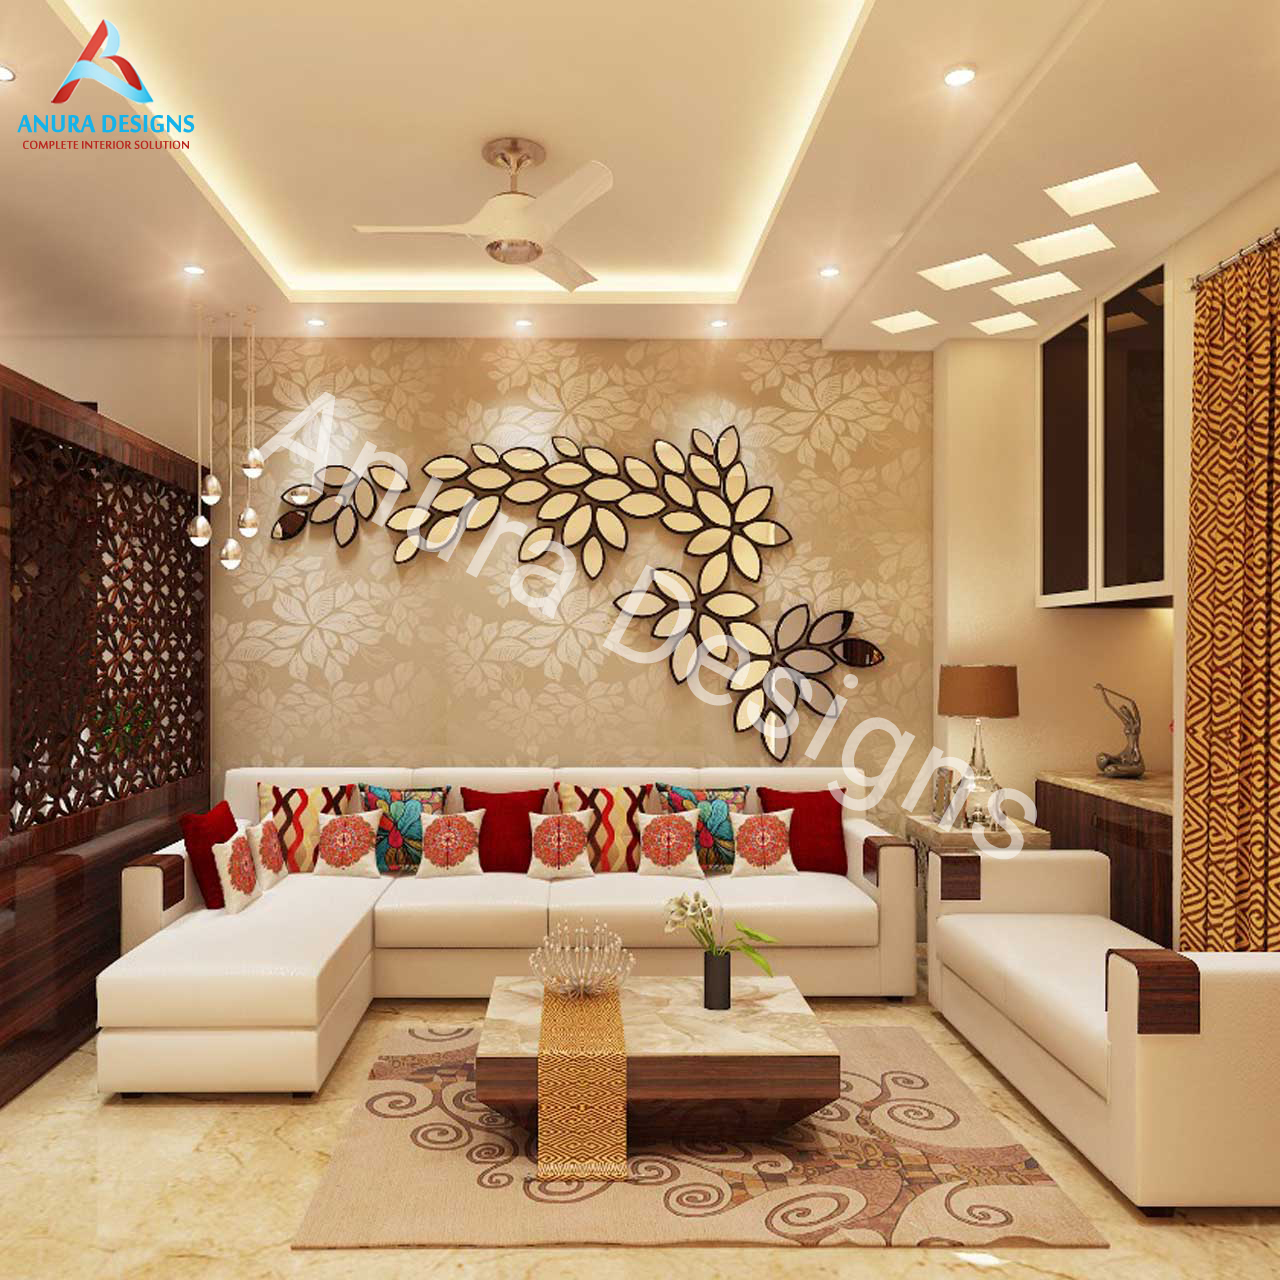 Living Room Interior Designer in Baljit Nagar